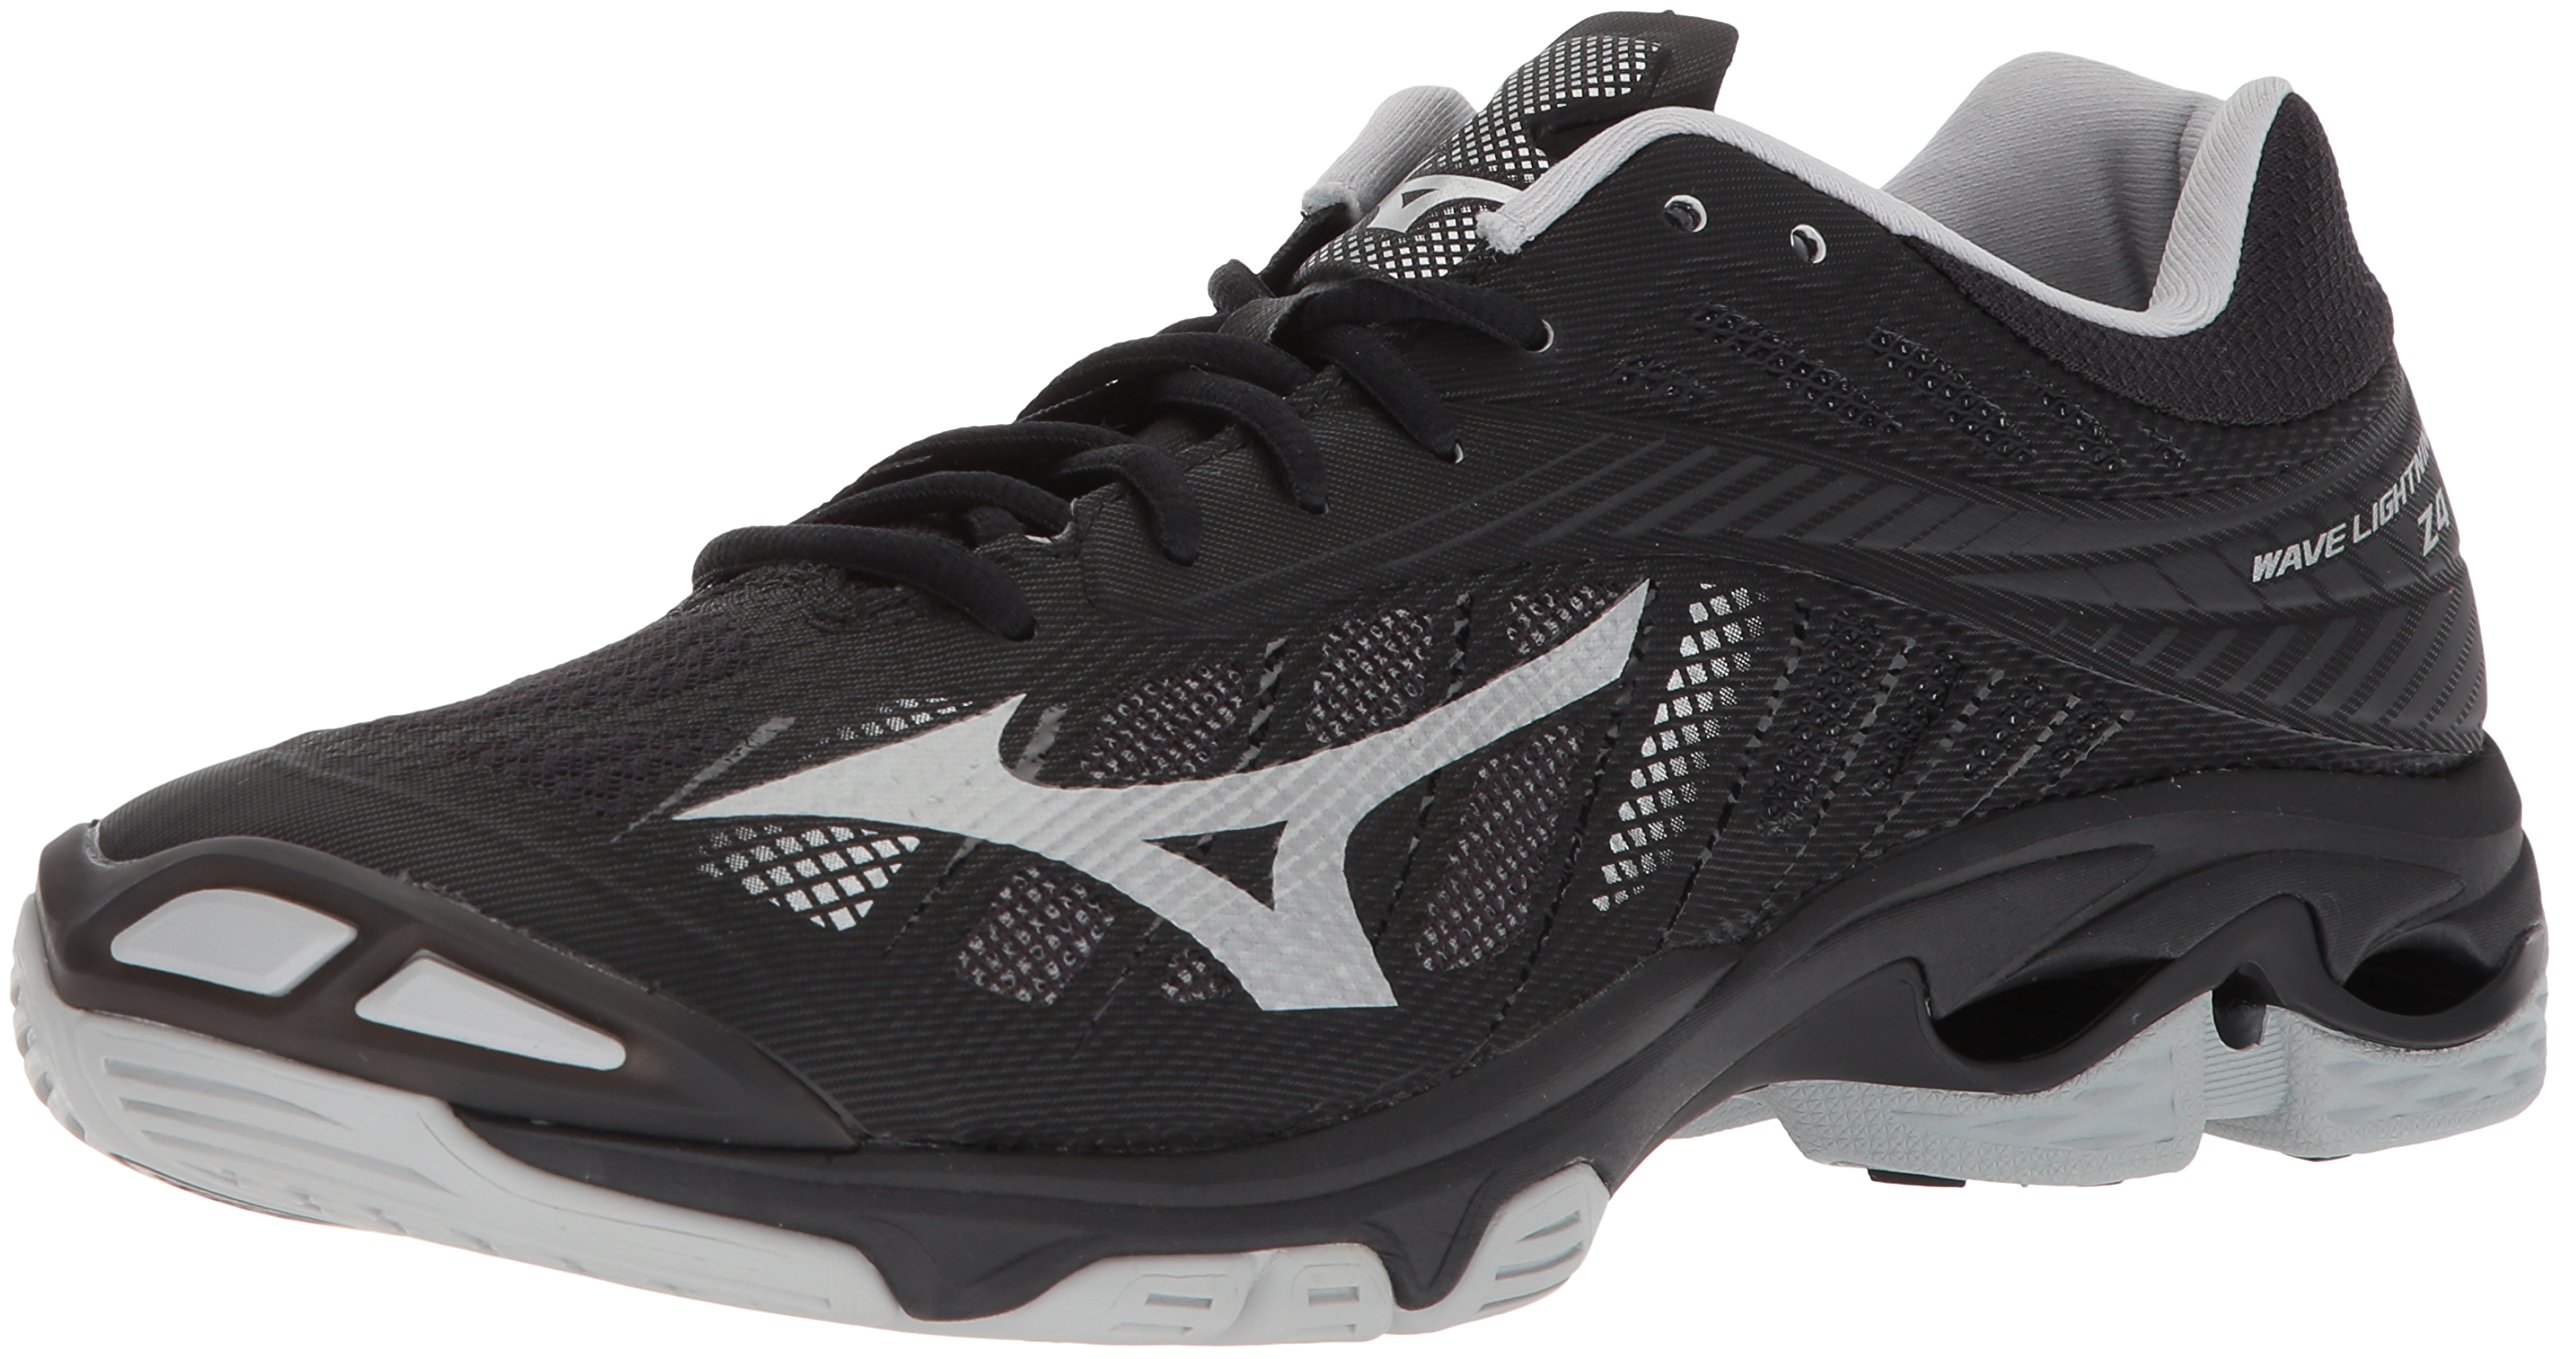 Mizuno Men's Wave Lightning Z4 Volleyball Shoe, Black/Silver, Men's 17 D US